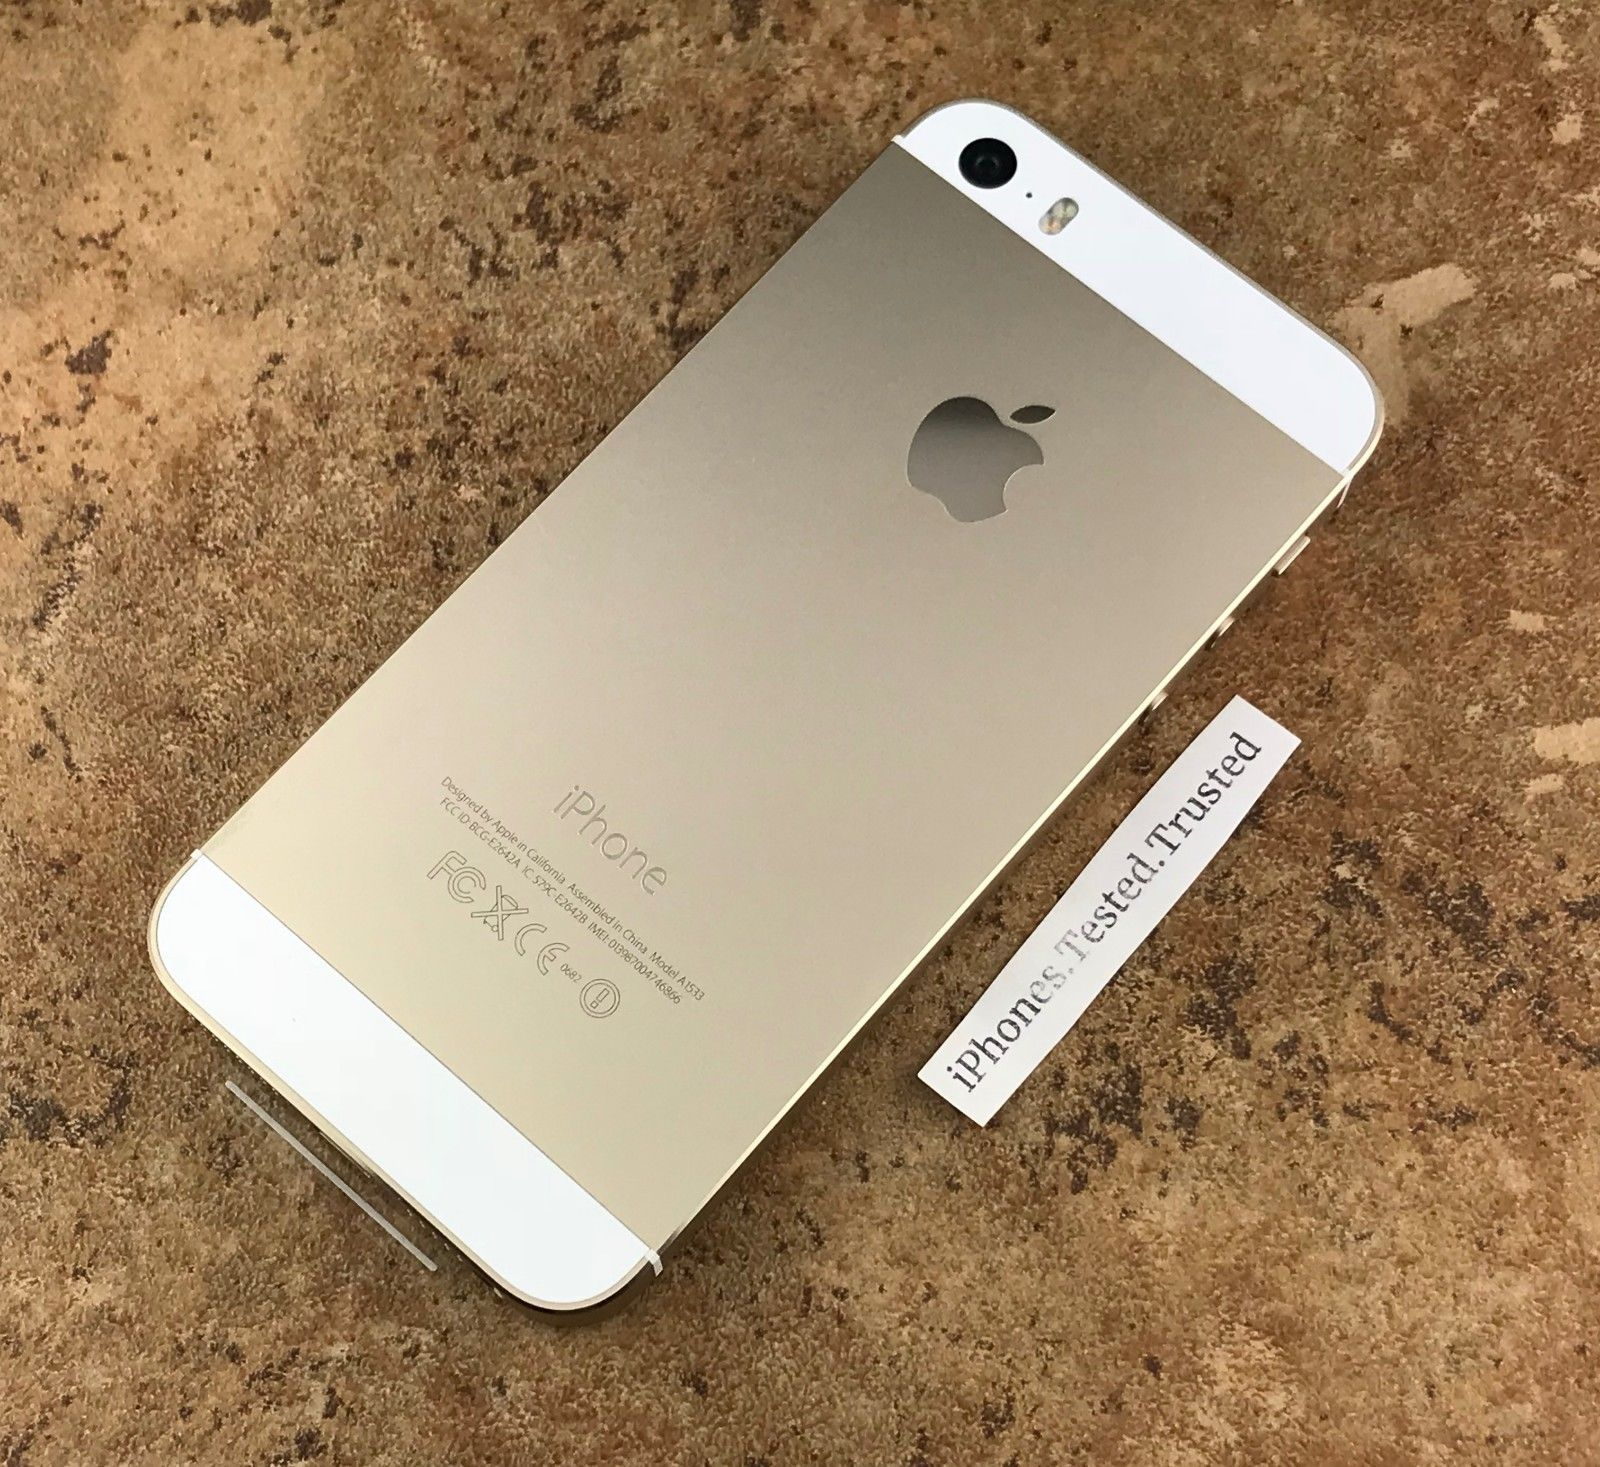 iphone 5s a1457 firmware download